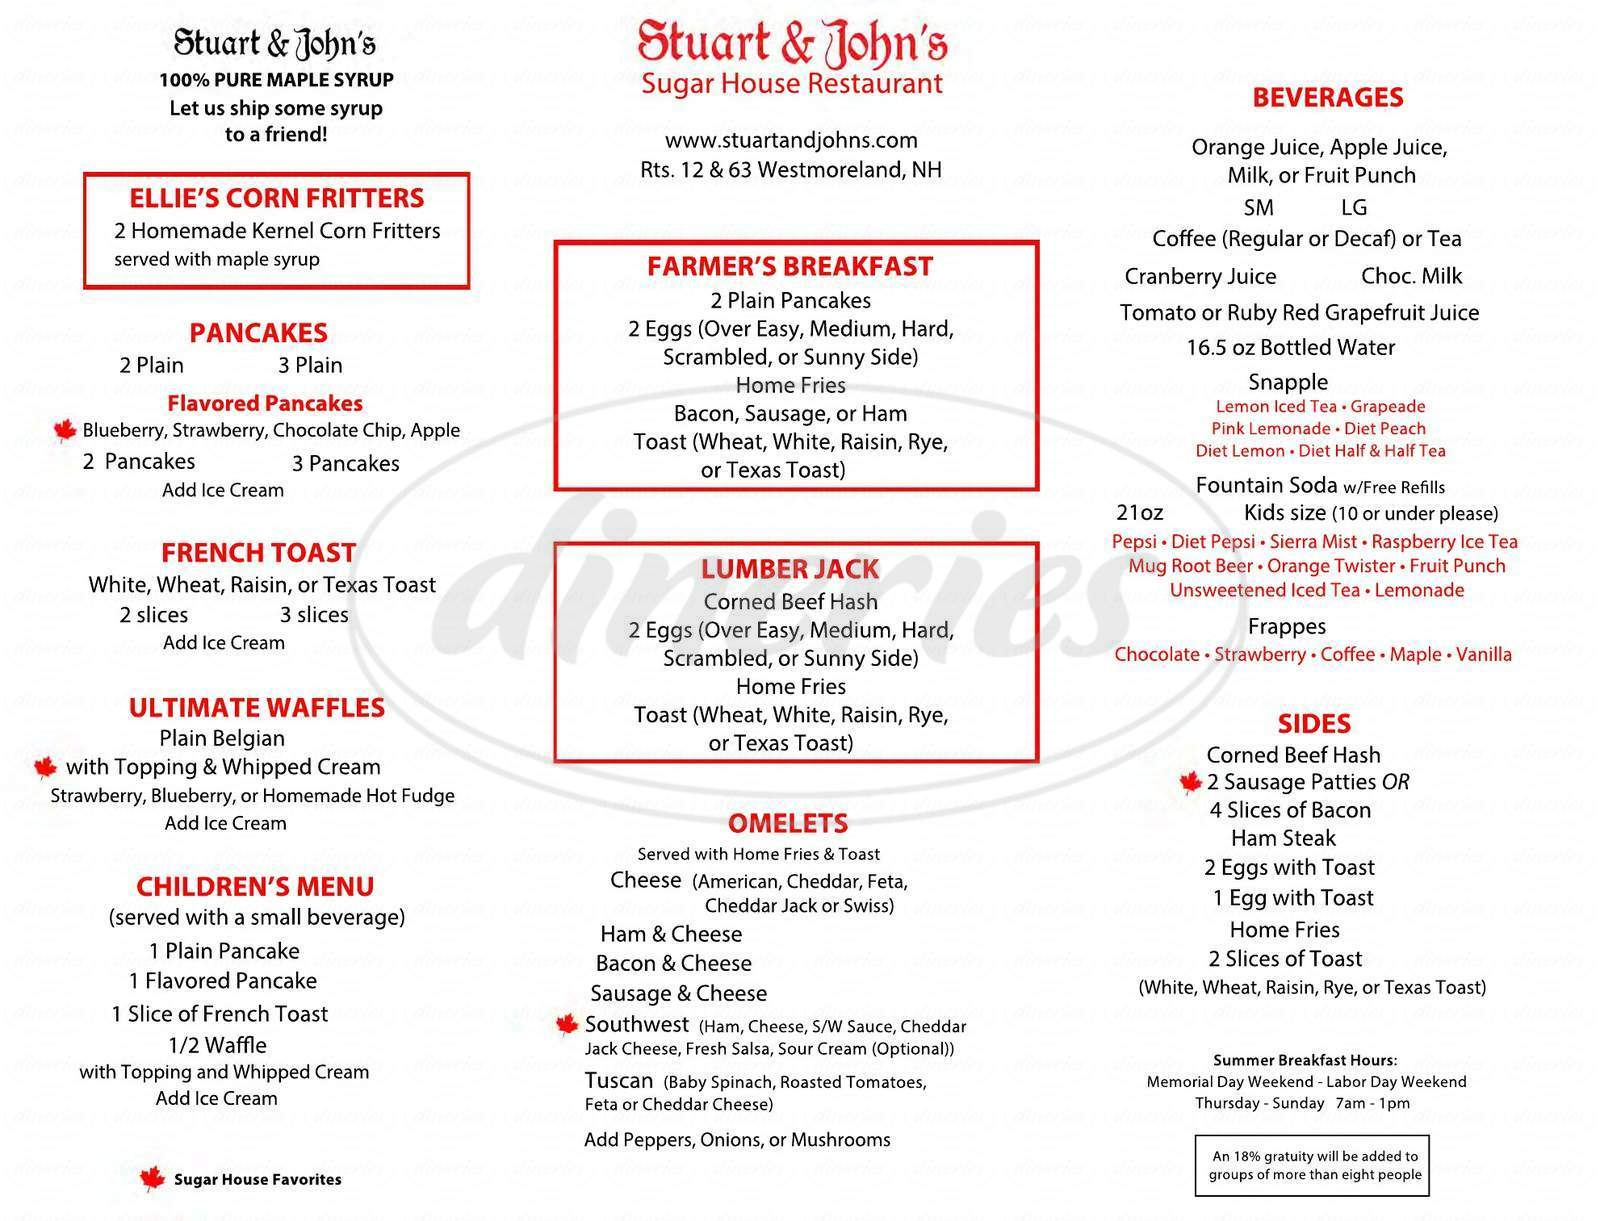 menu for Stuart & John's Sugar House